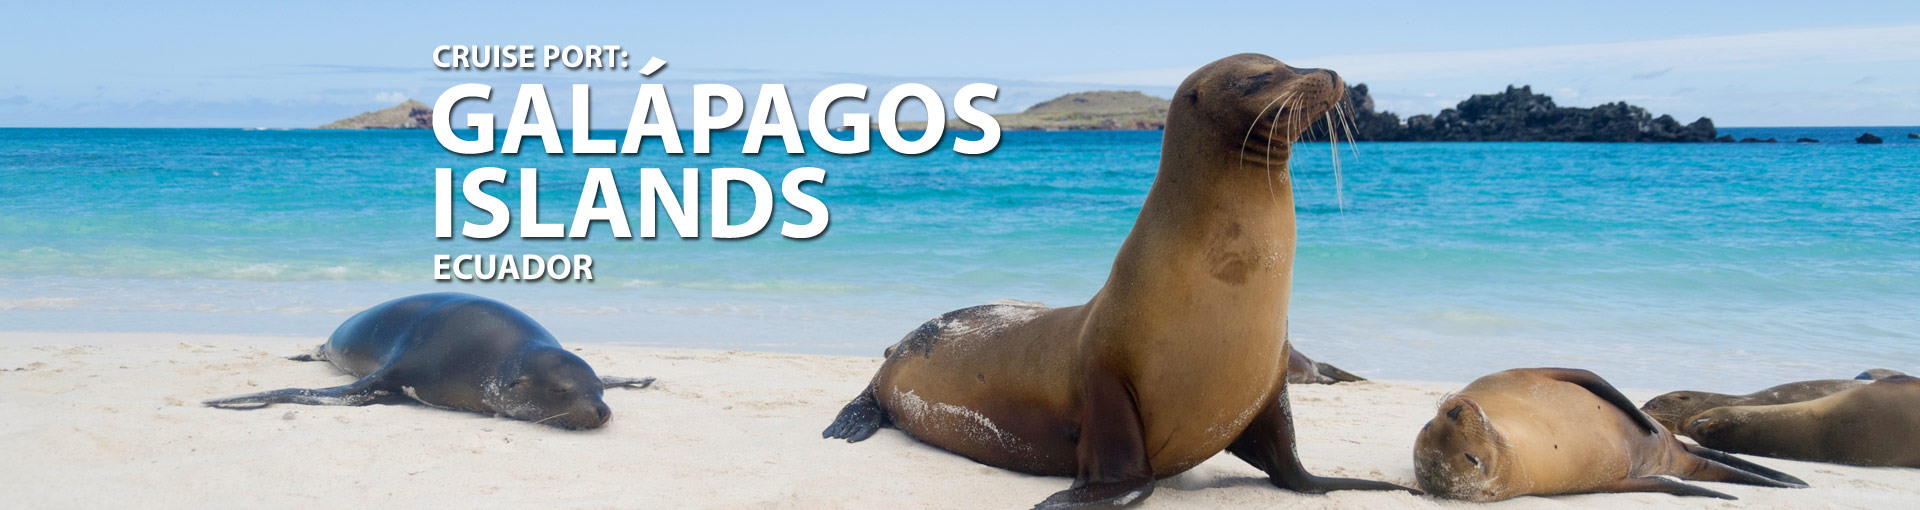 Cruises from the Galapagos Islands, Ecuador